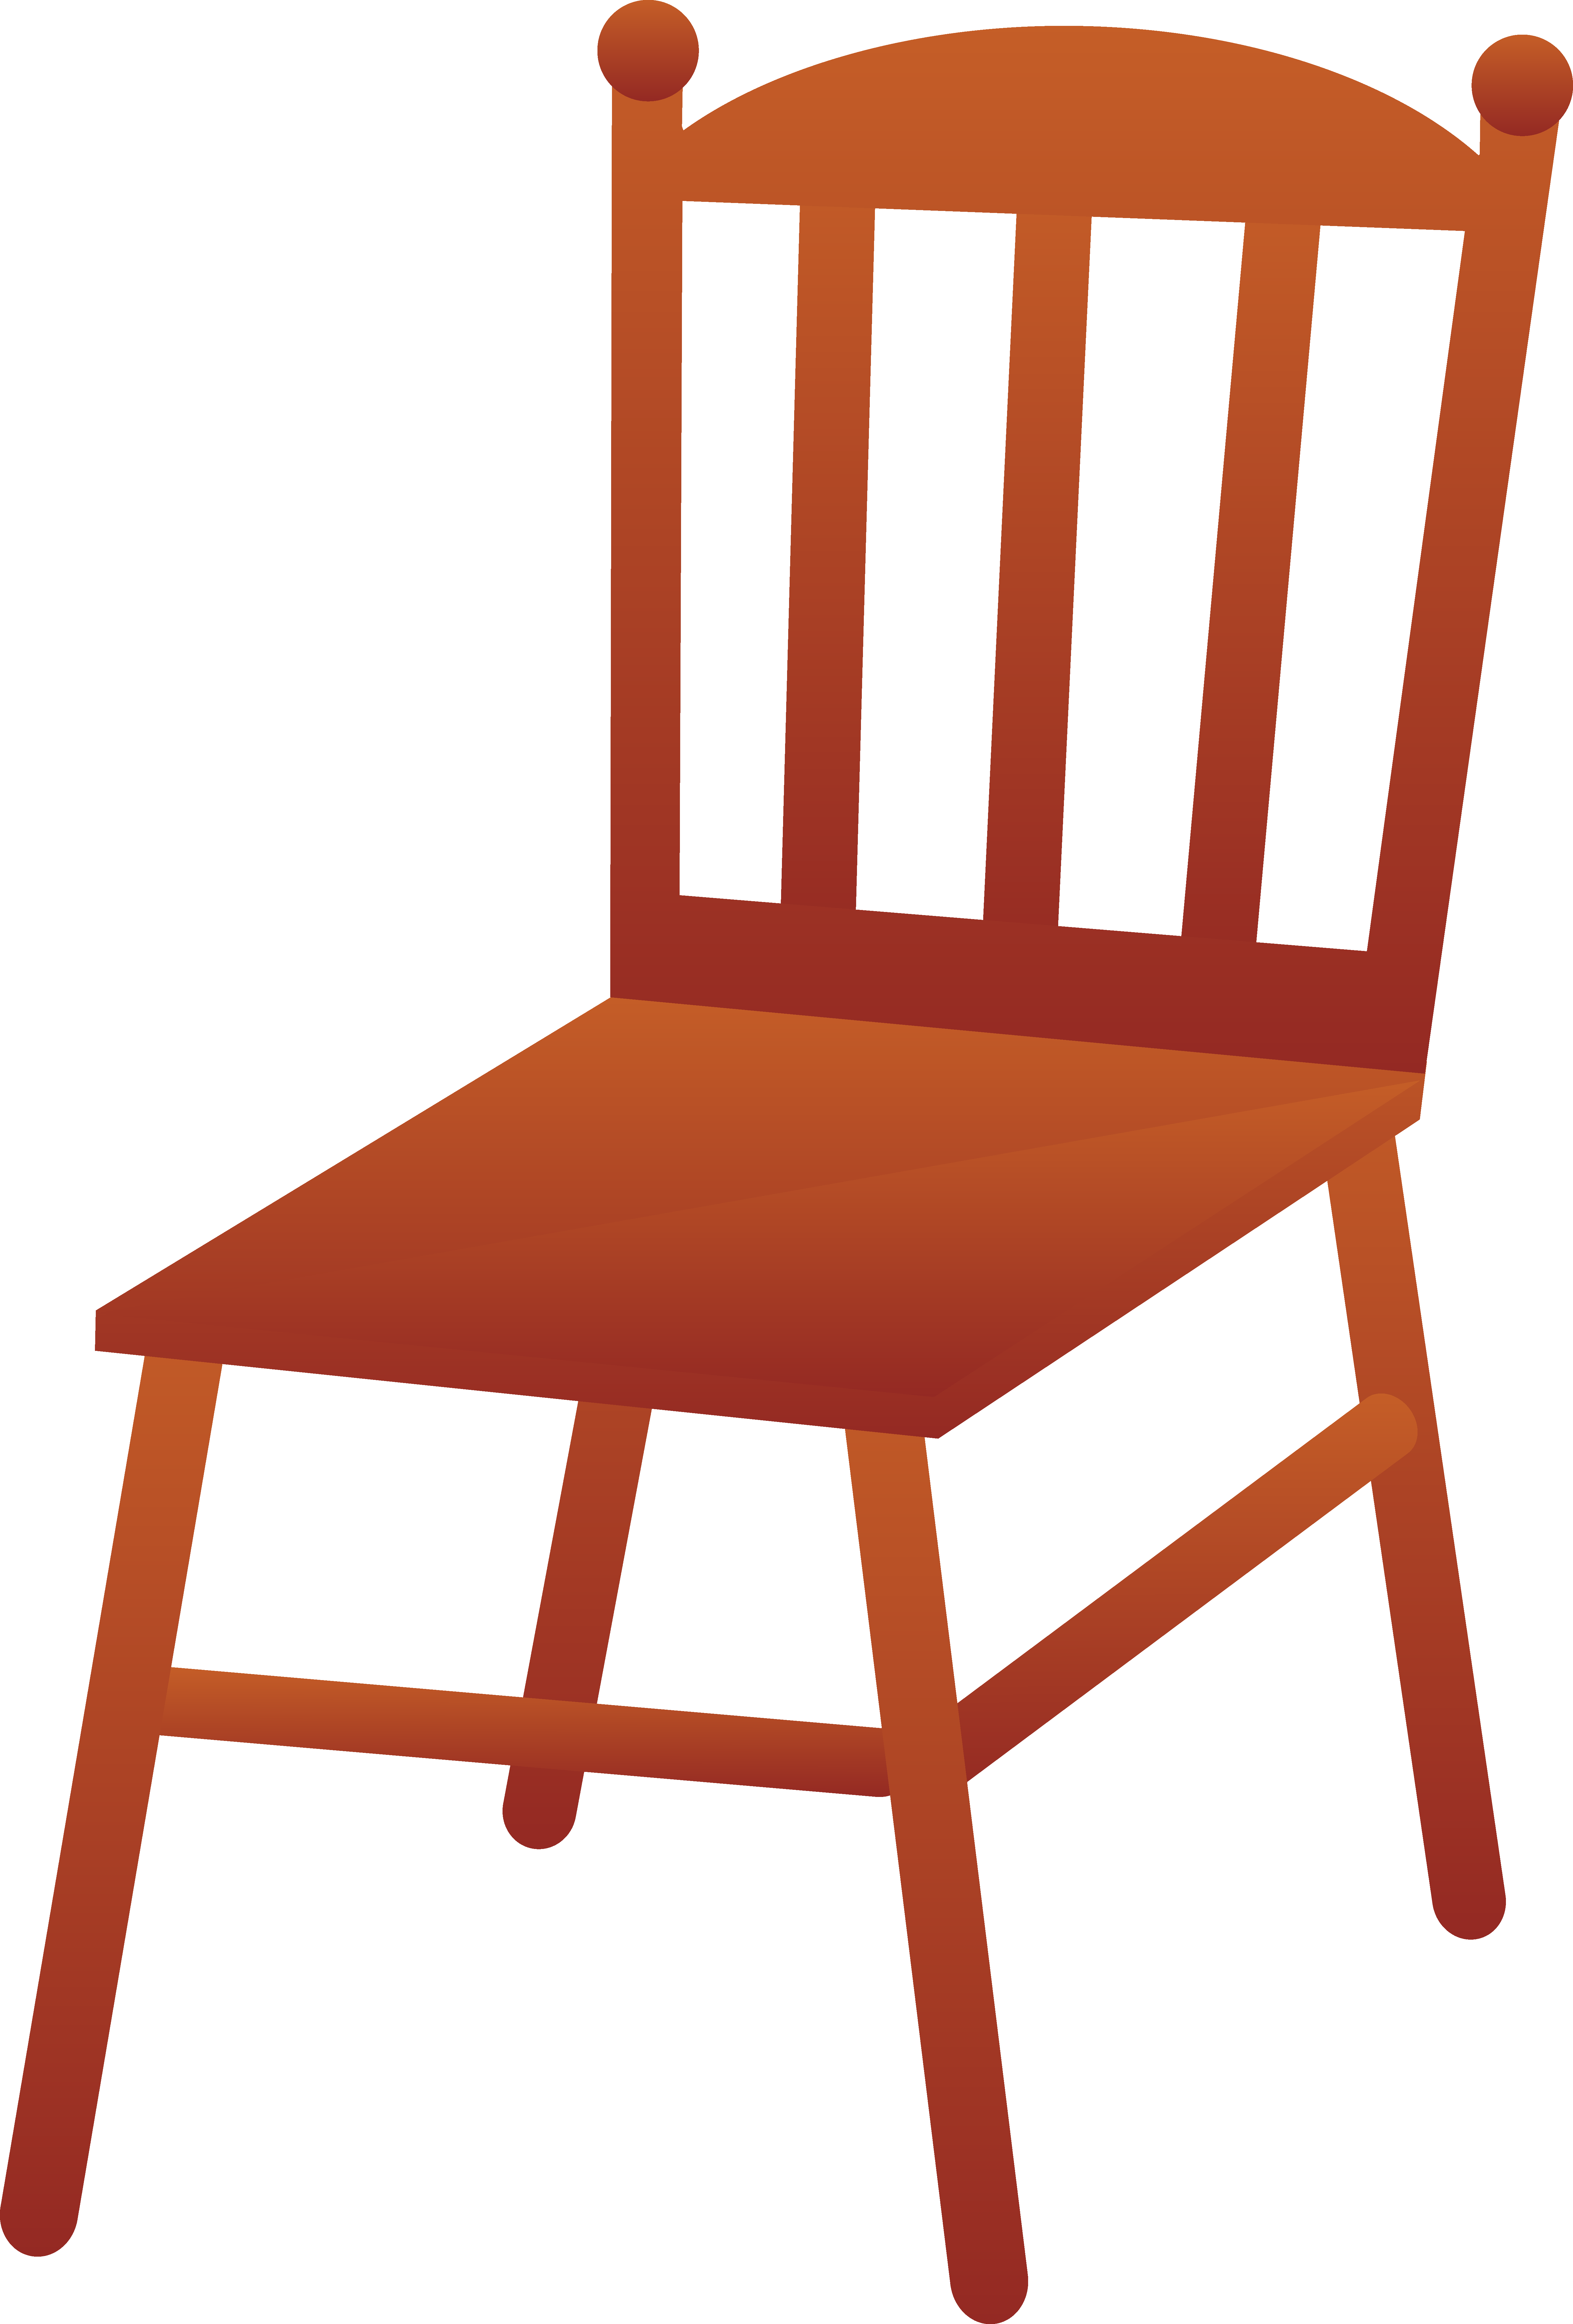 School chair clipart banner library library Classroom Chair Clipart | Clipart Panda - Free Clipart Images banner library library